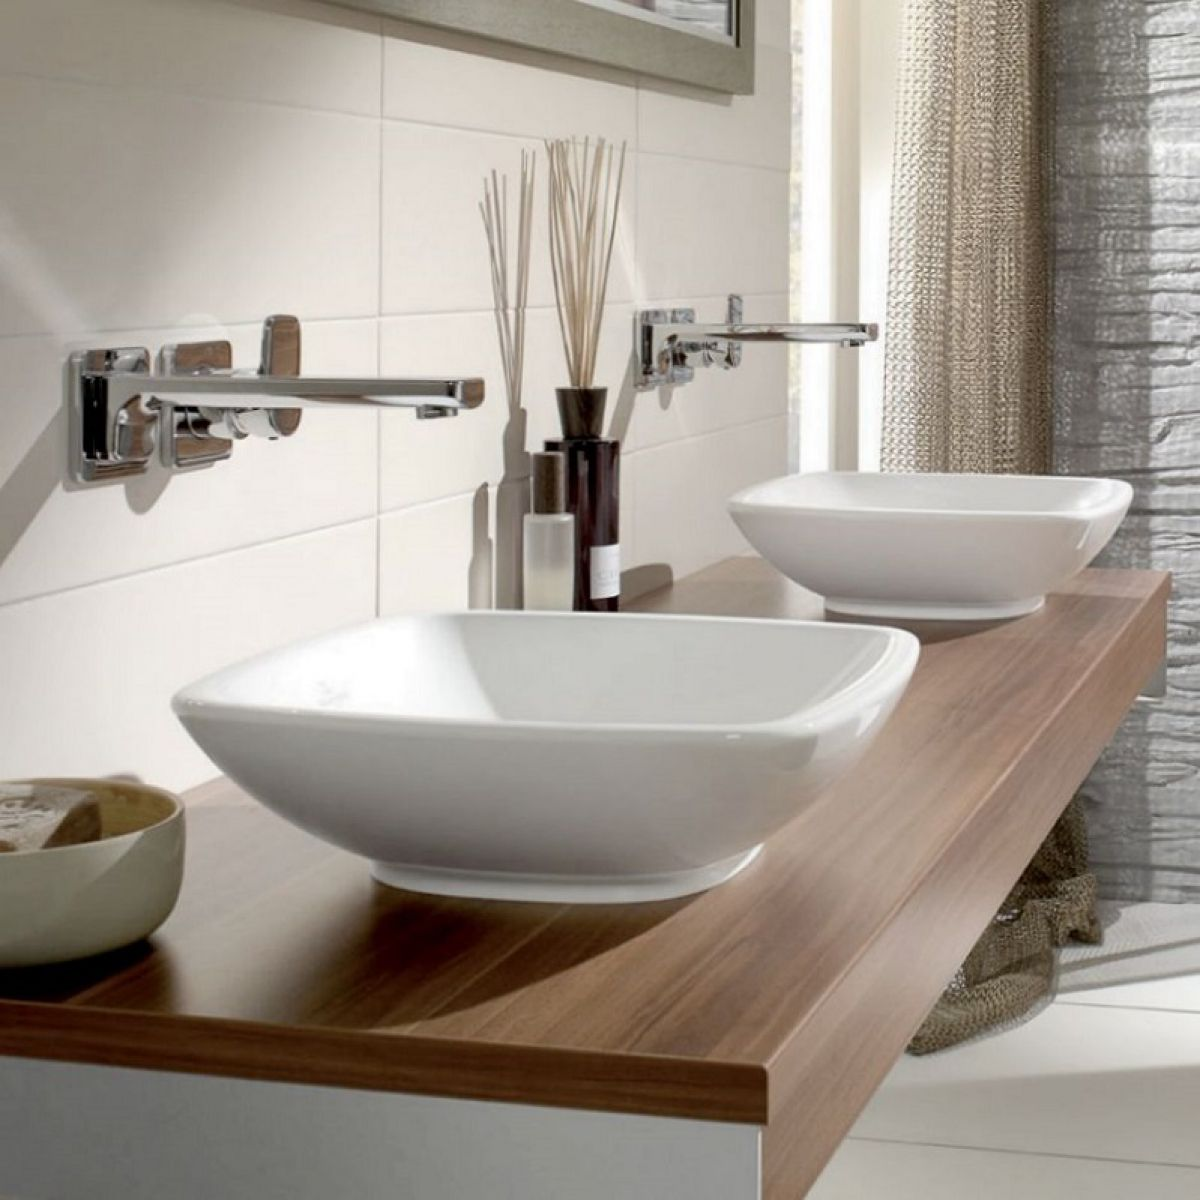 Villeroy & Boch Loop & Friends Square Surface Mounted Basin